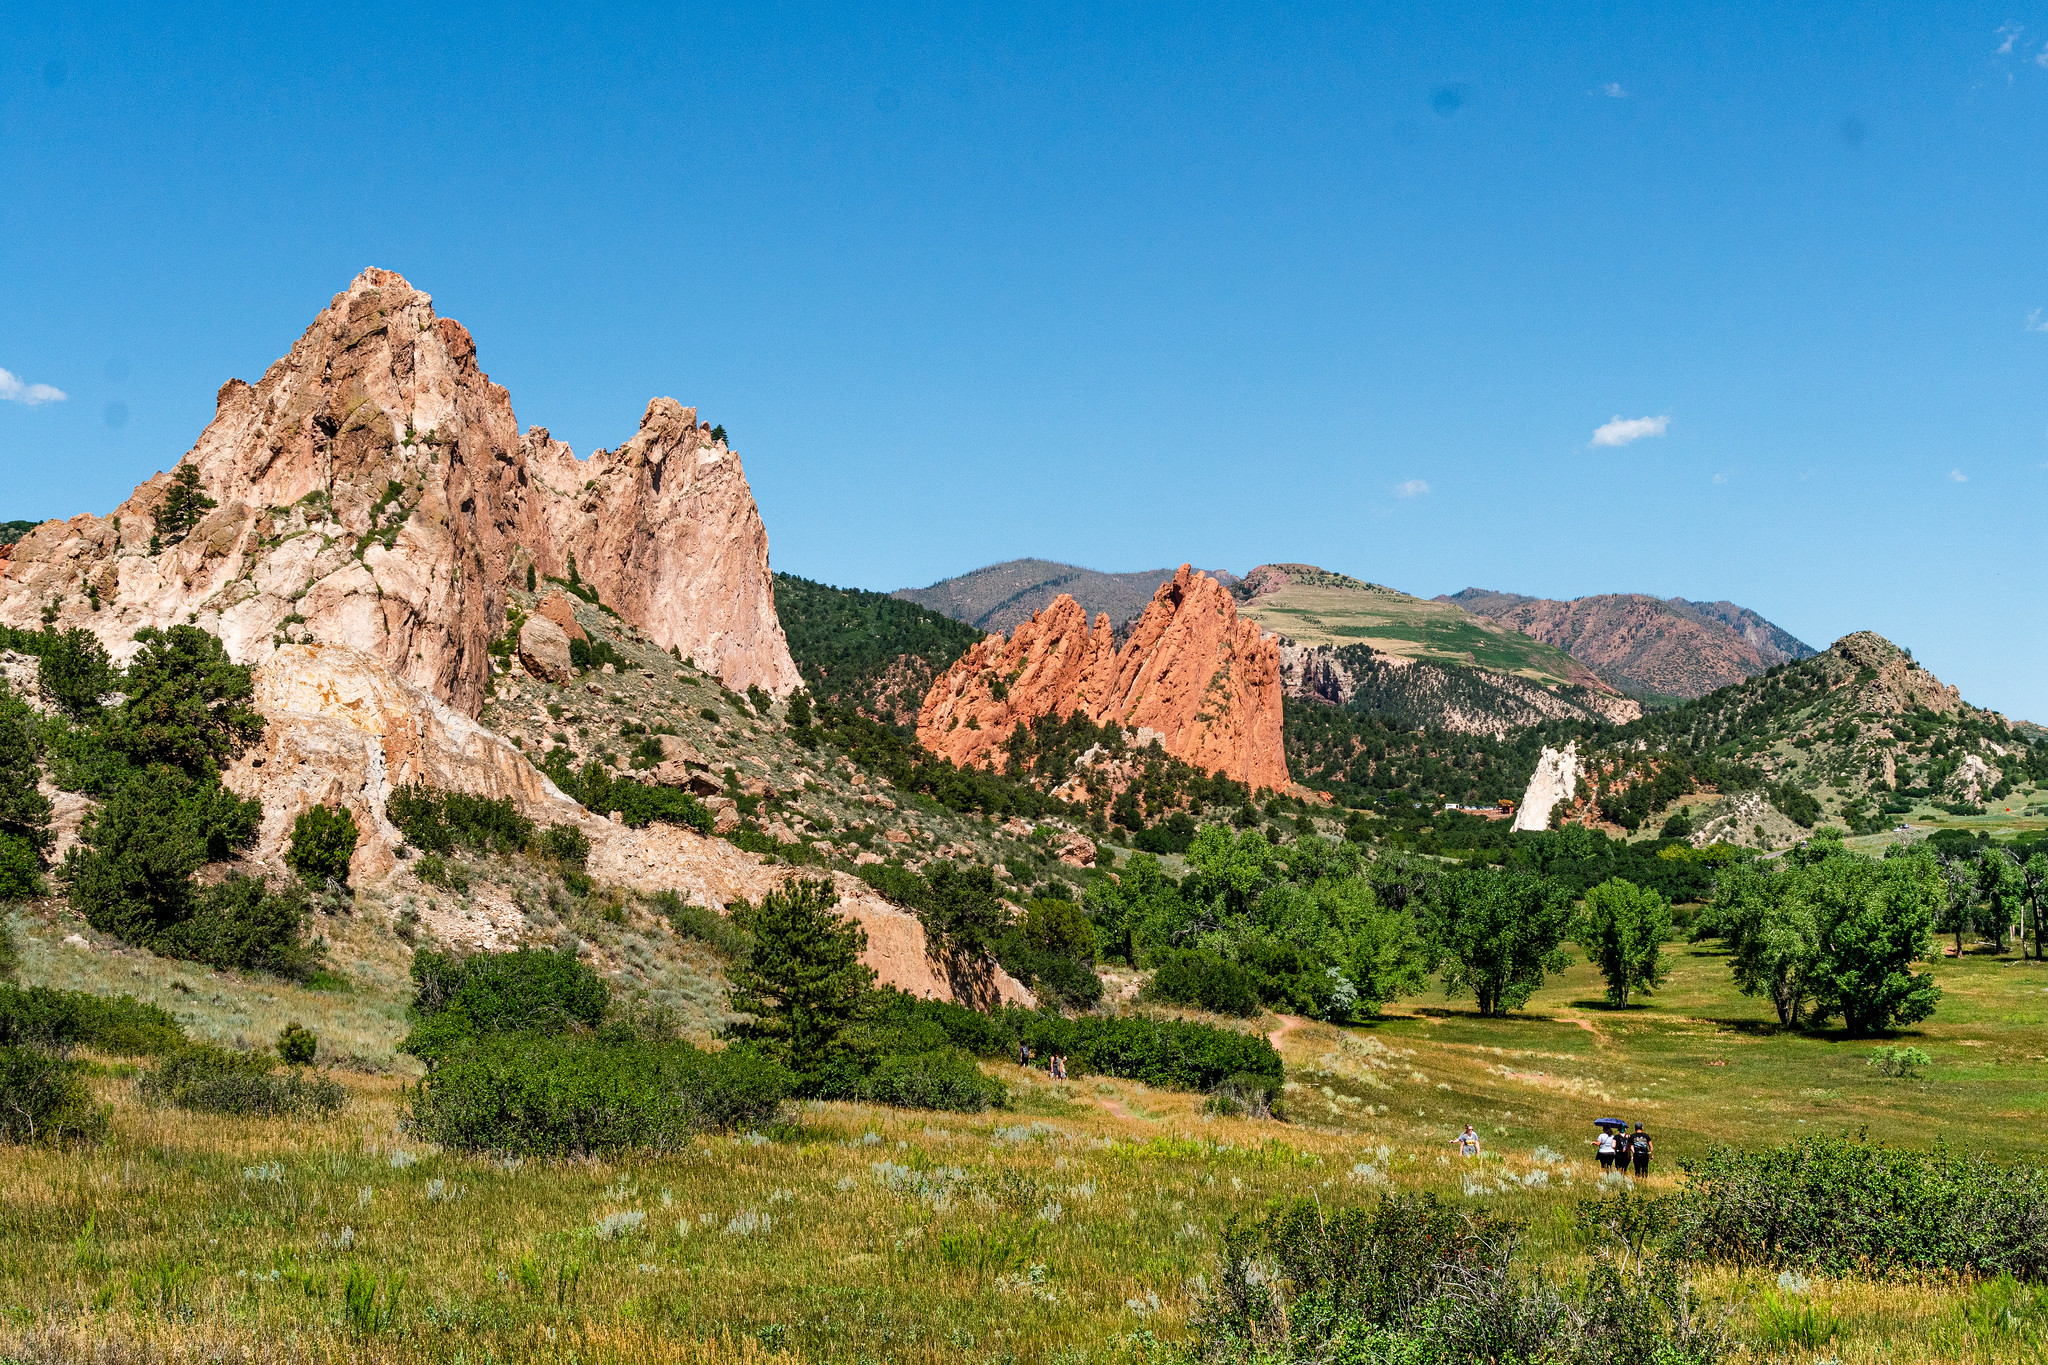 Photos from hiking in Garden of the Gods park in Colorado